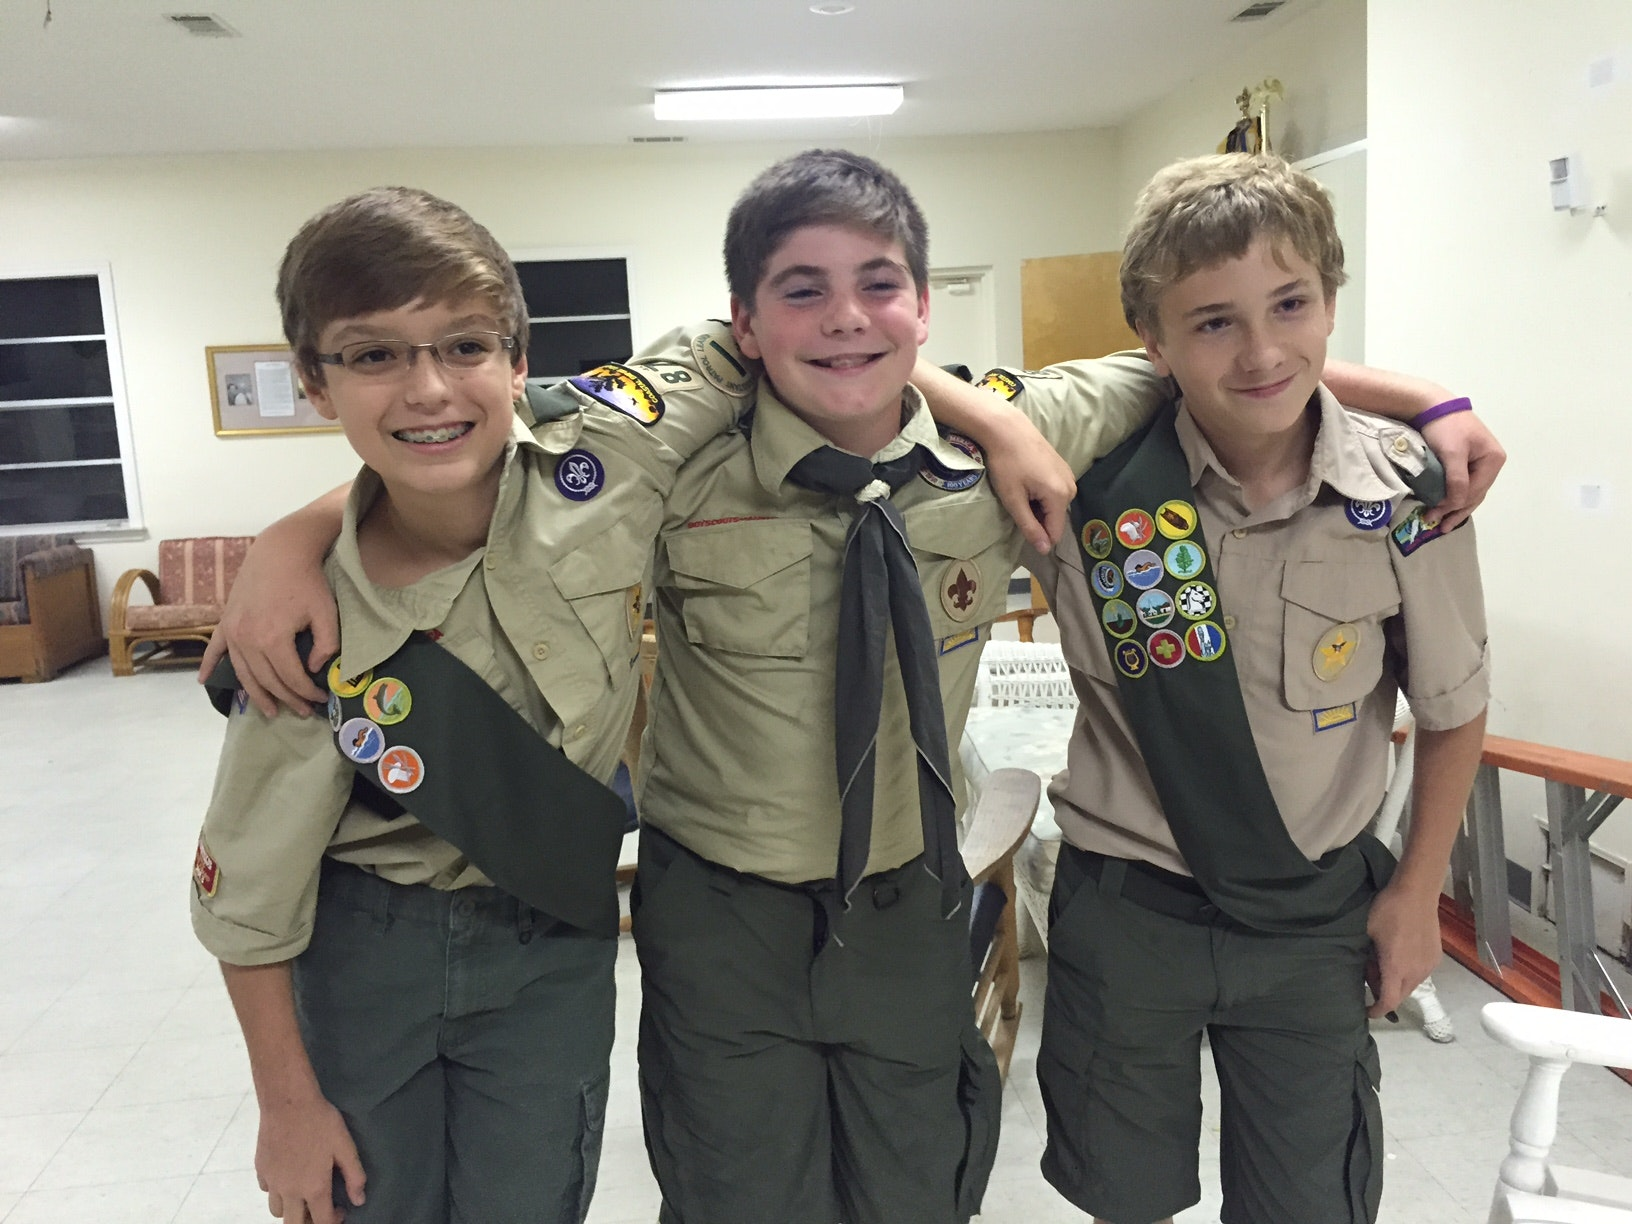 TROOP 876- BOY SCOUTS OF AMERICA